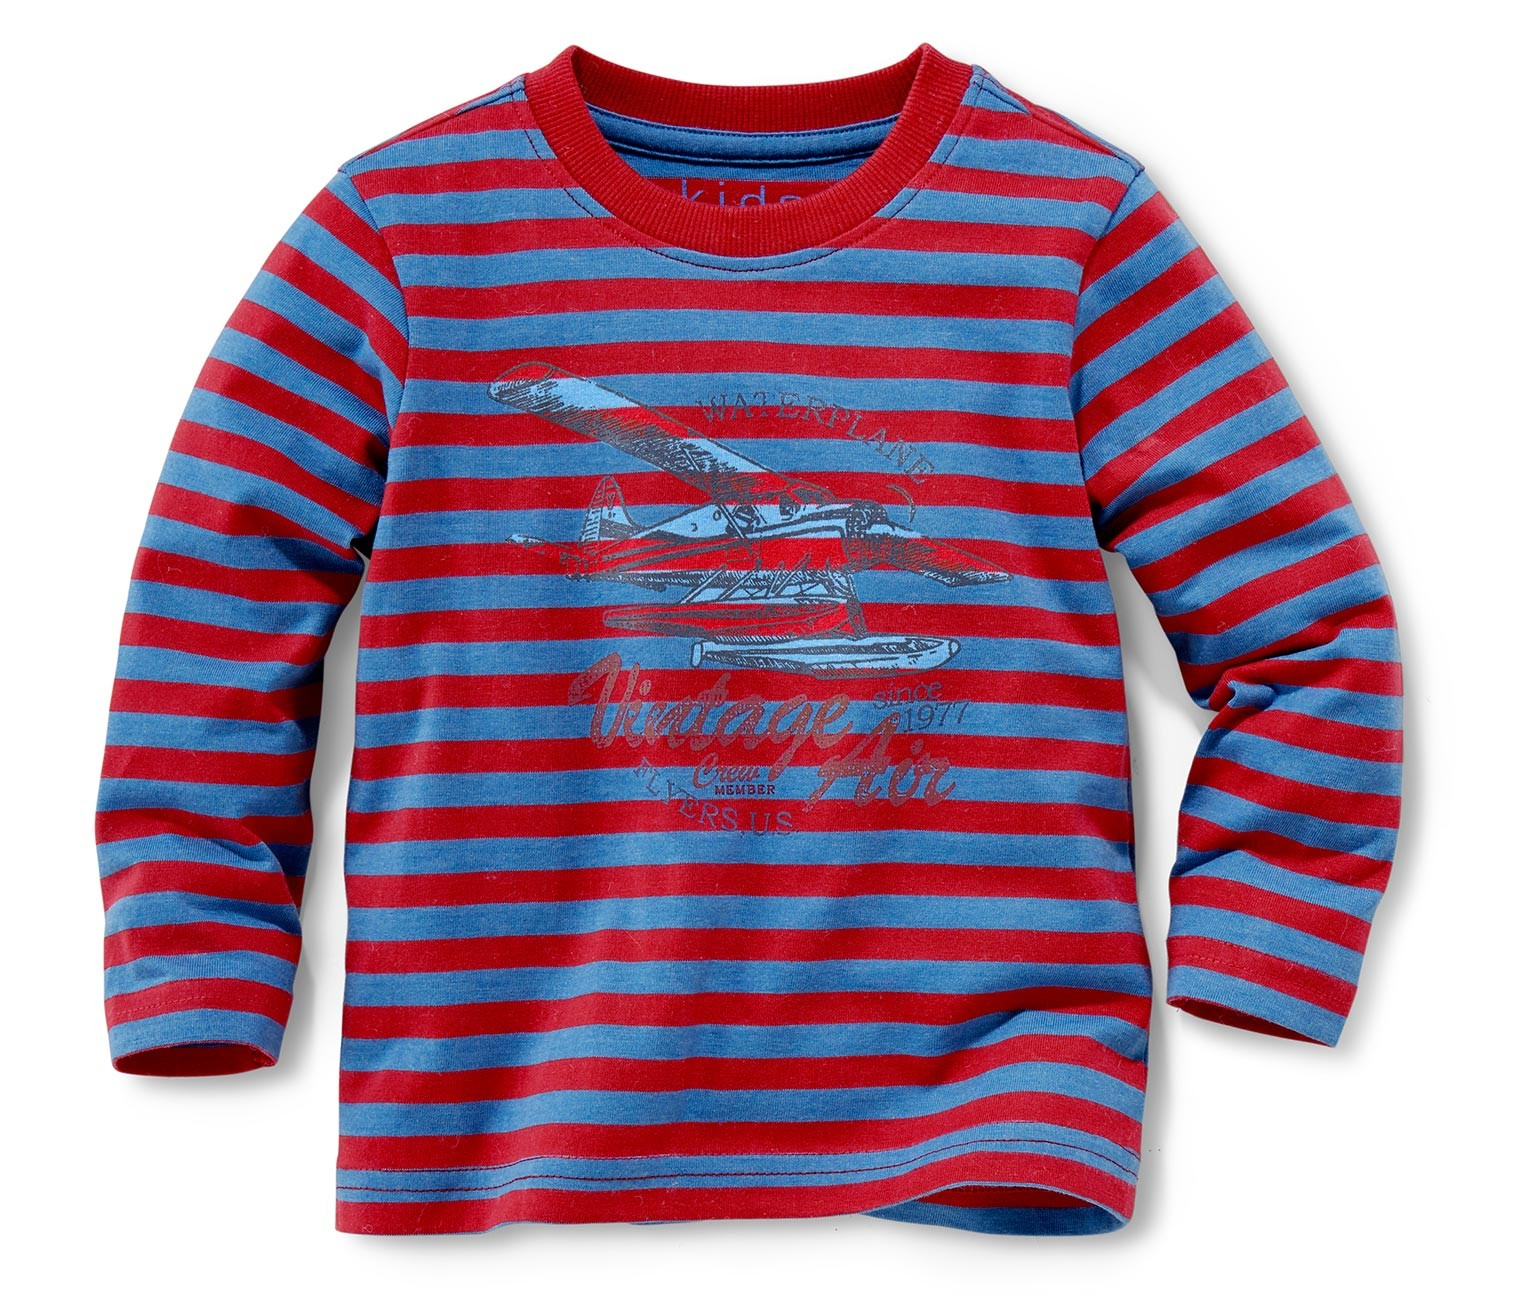 Boy 39 s shirt long sleeve 2 pieces red blue striped blue for Red blue striped shirt